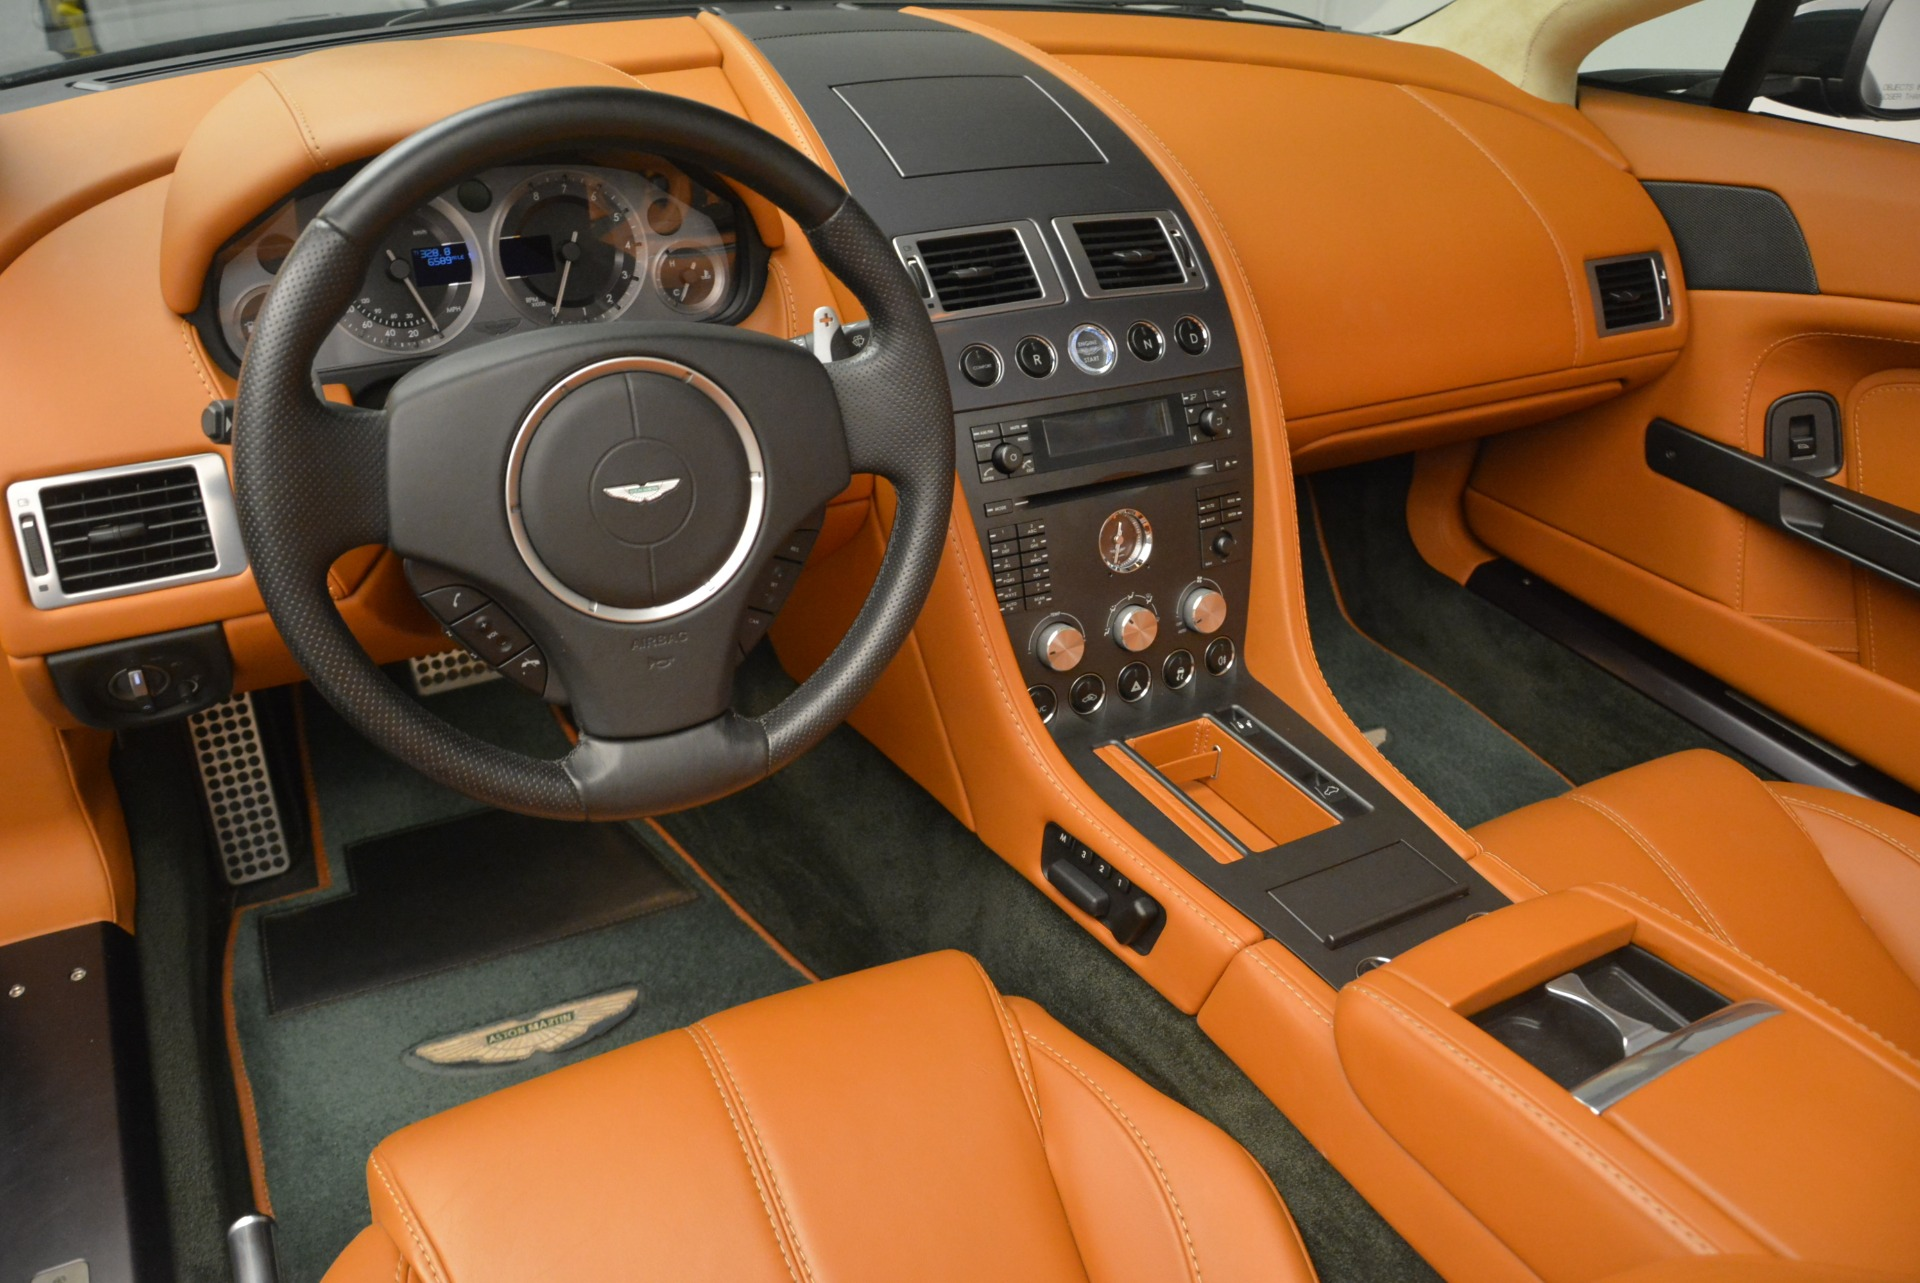 Used 2008 Aston Martin V8 Vantage Roadster For Sale In Westport, CT 2422_p17